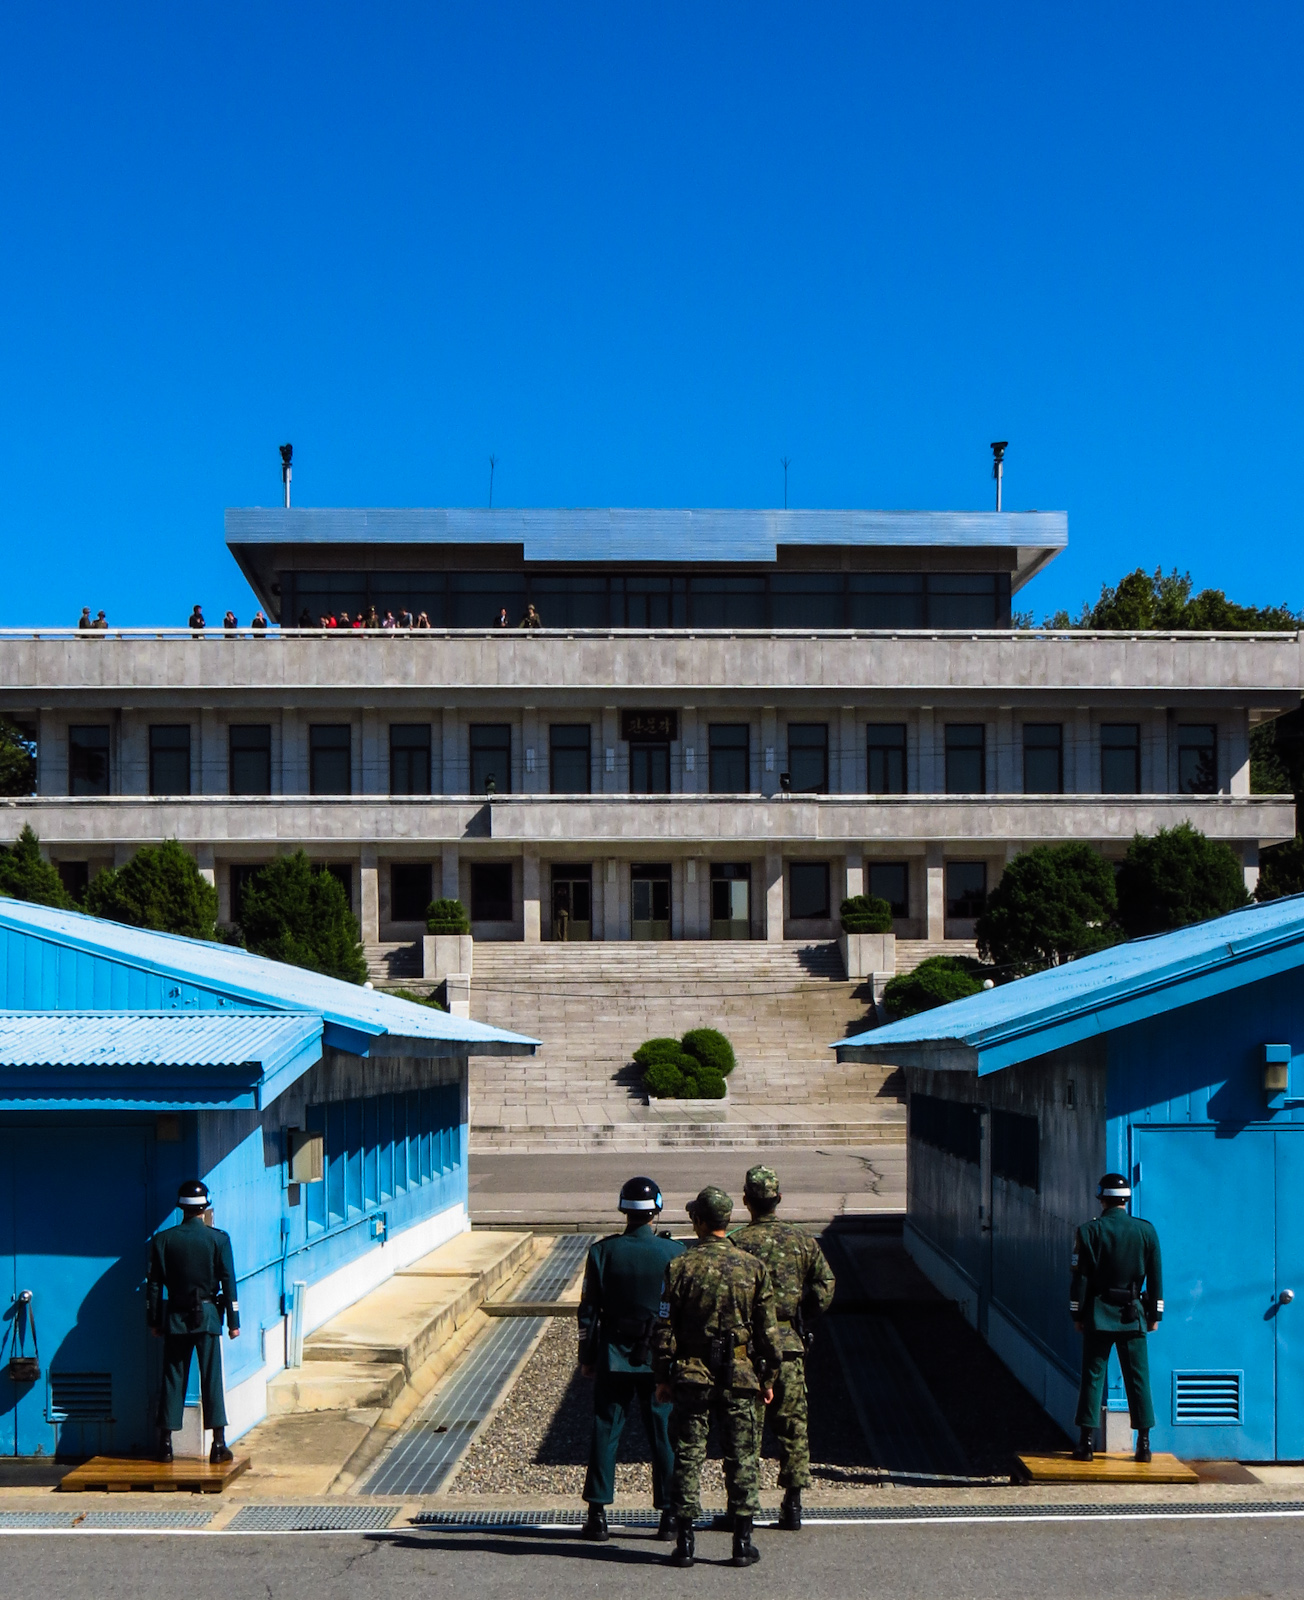 seoul trips dmz tour and joint security area itinerary. Black Bedroom Furniture Sets. Home Design Ideas